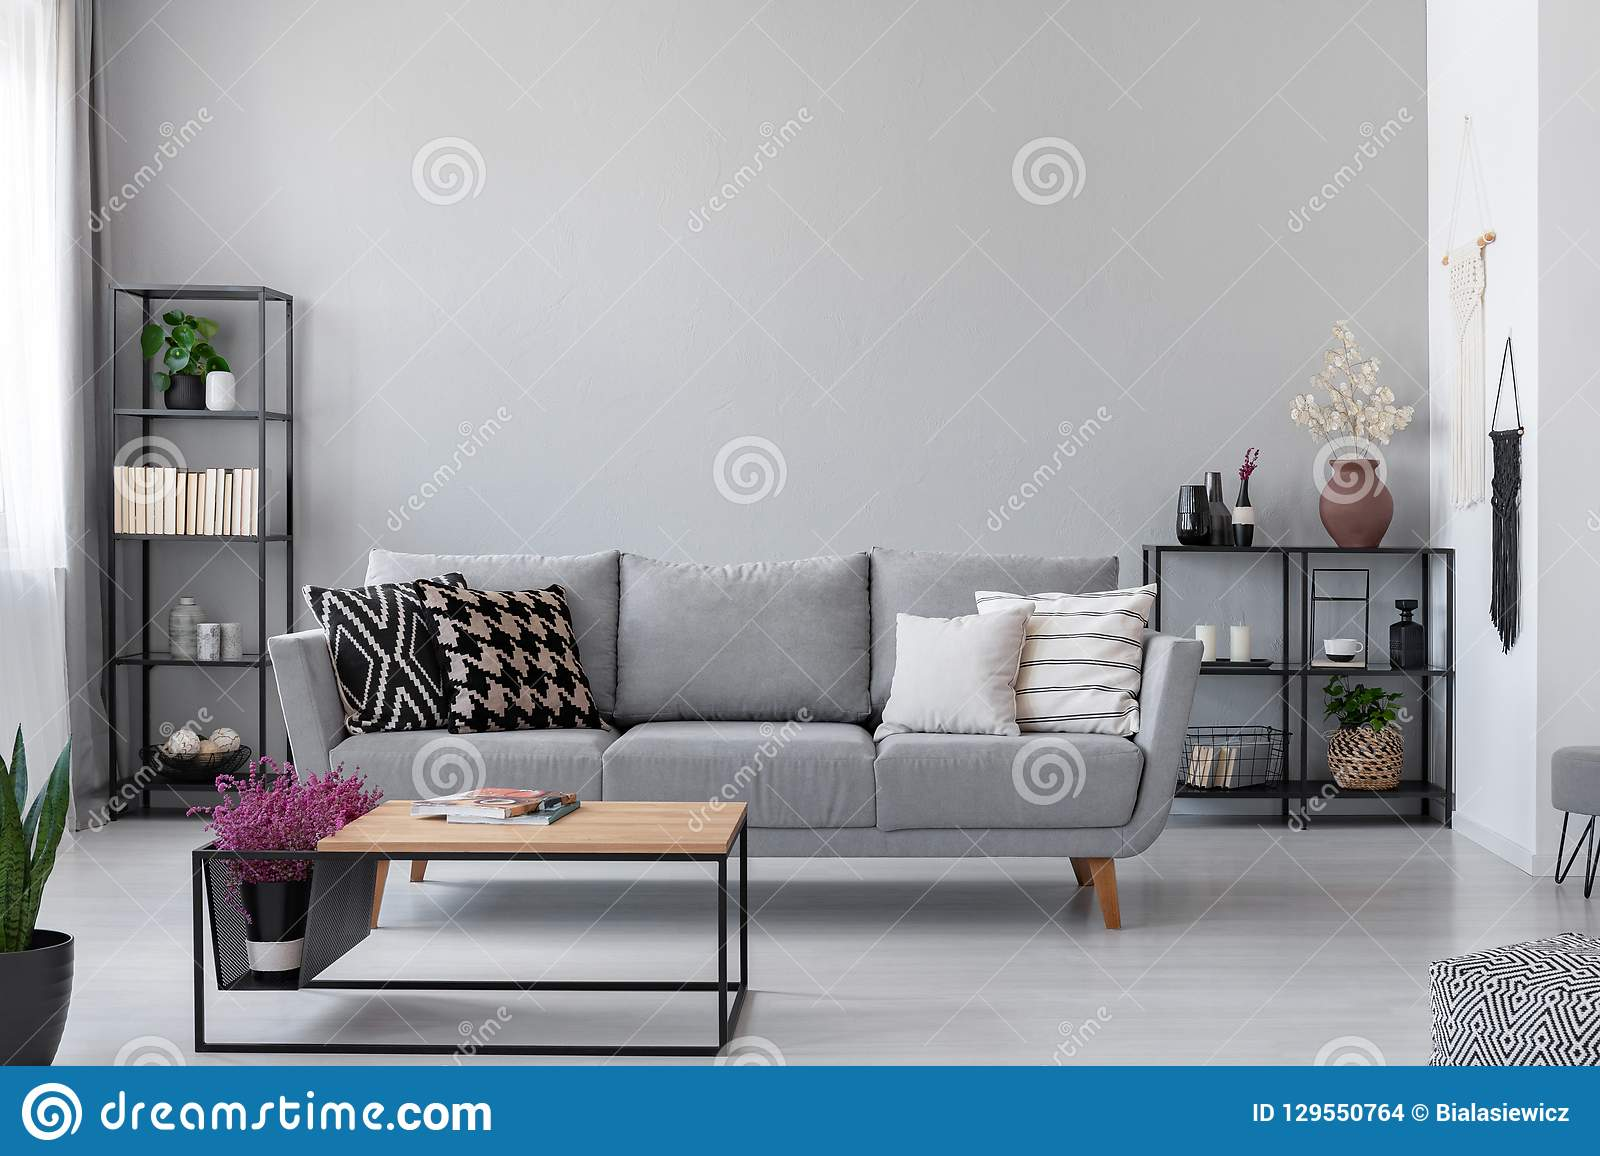 Copy space on the wall of scandinavian living room with modern couch, metal shelves and industrial coffee table